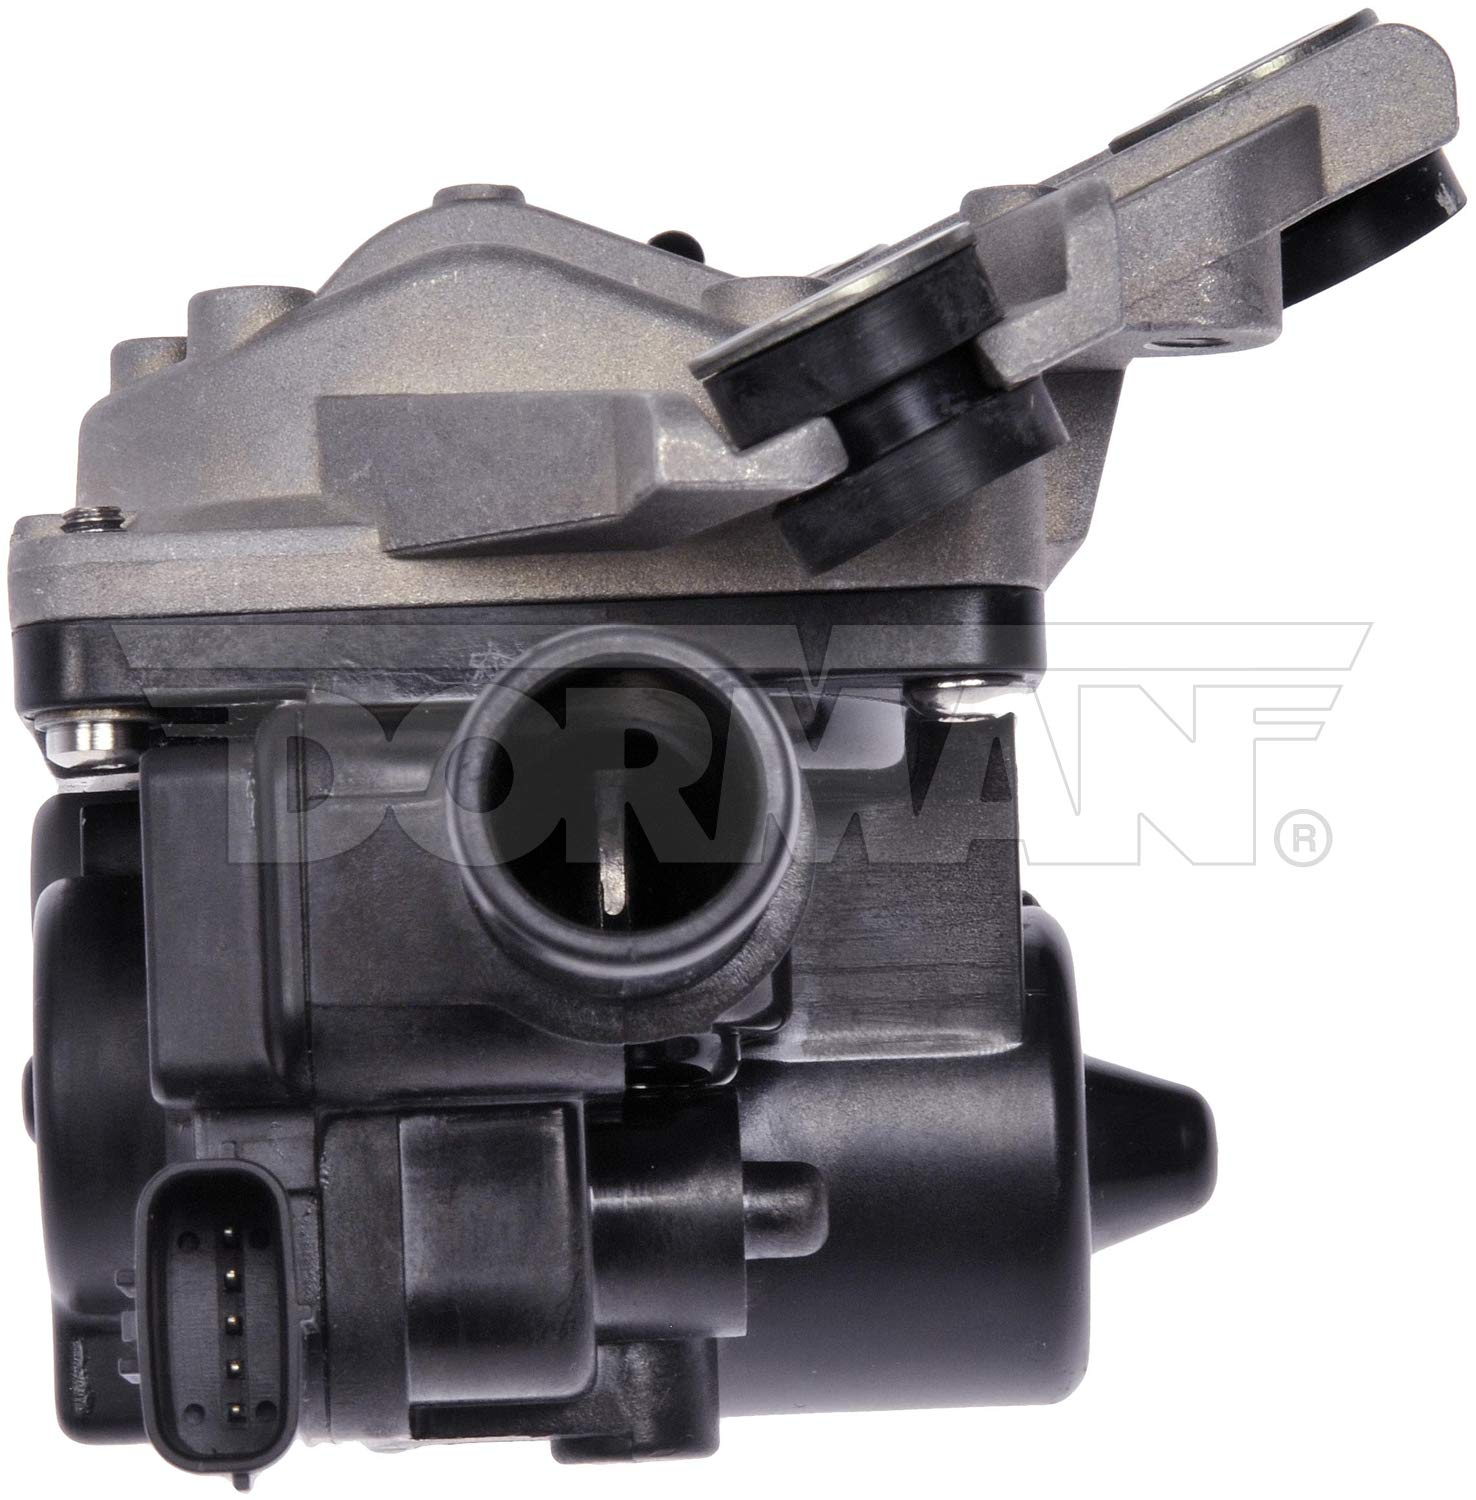 Dorman 911-607 Secondary Air Injection Check Valve for Select Lexus/Toyota Models